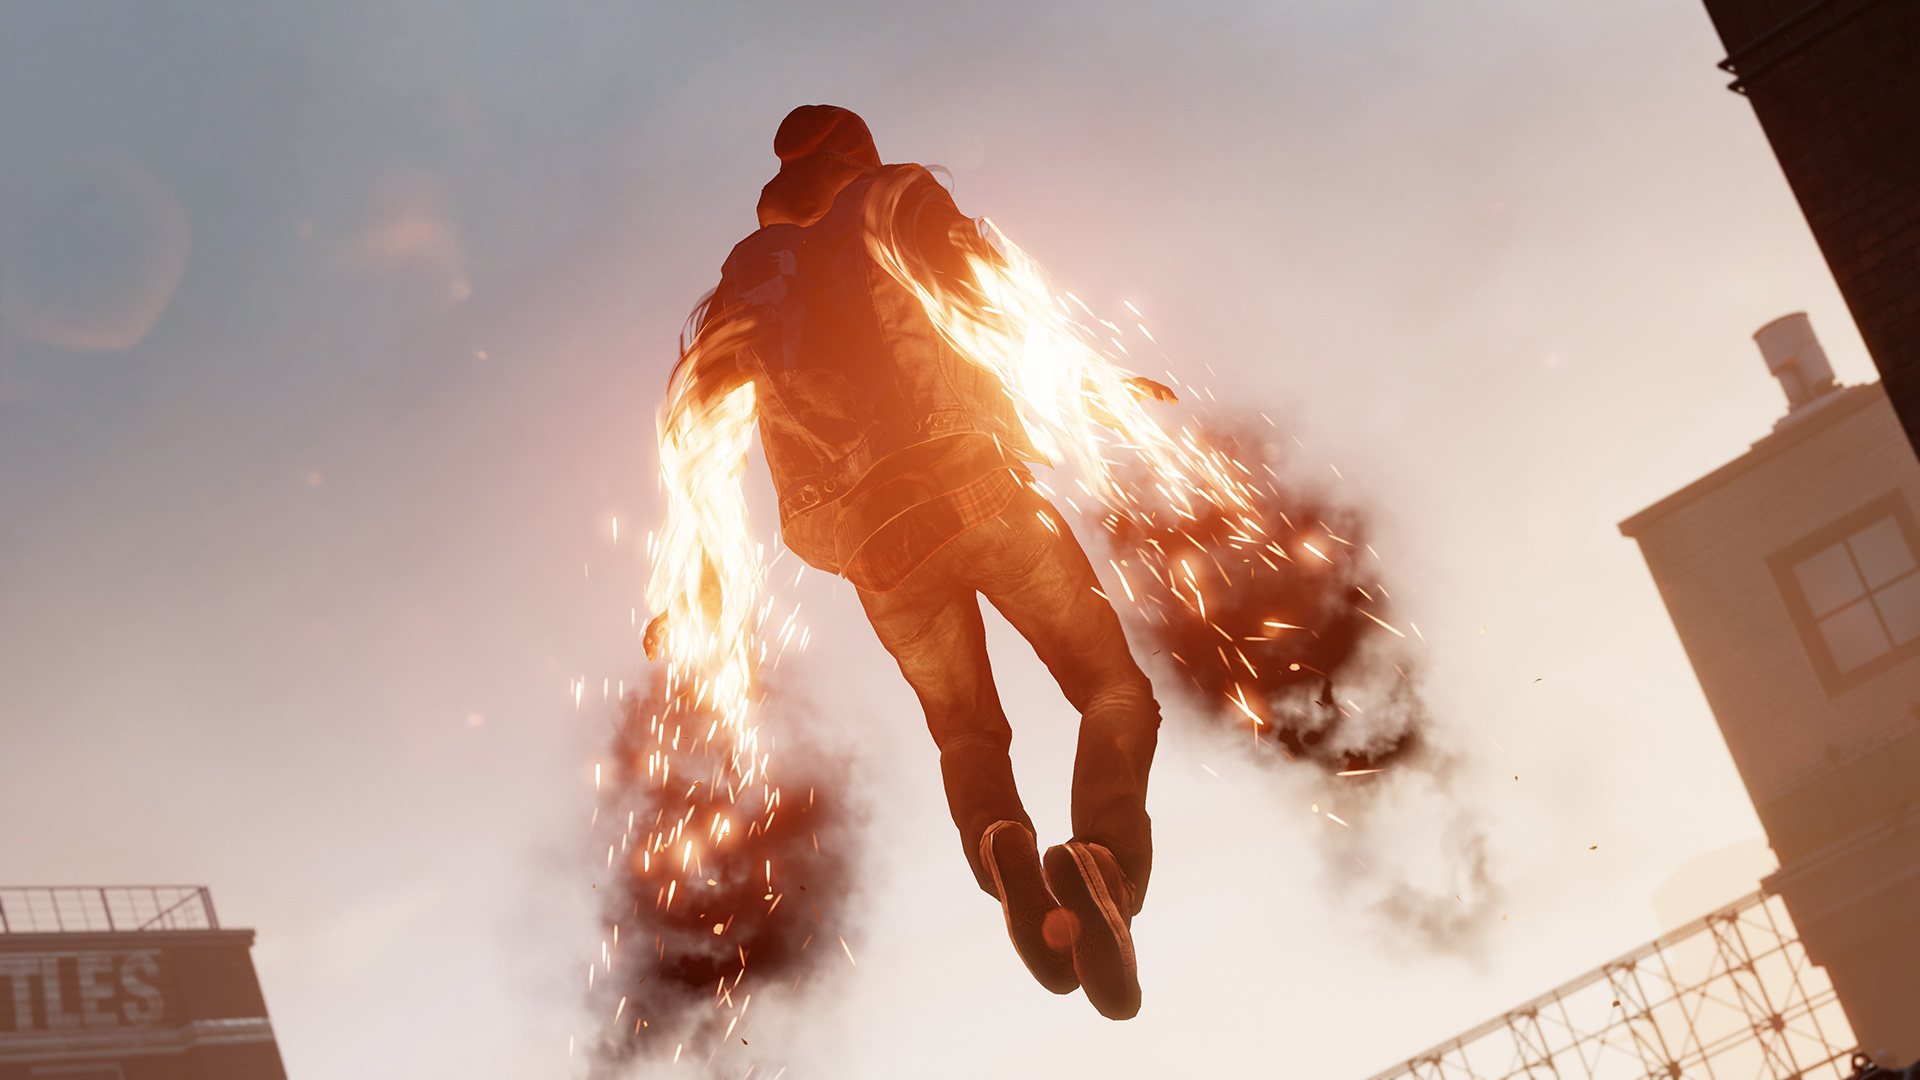 Infamous: Second Son available in Limited and Collector's editions